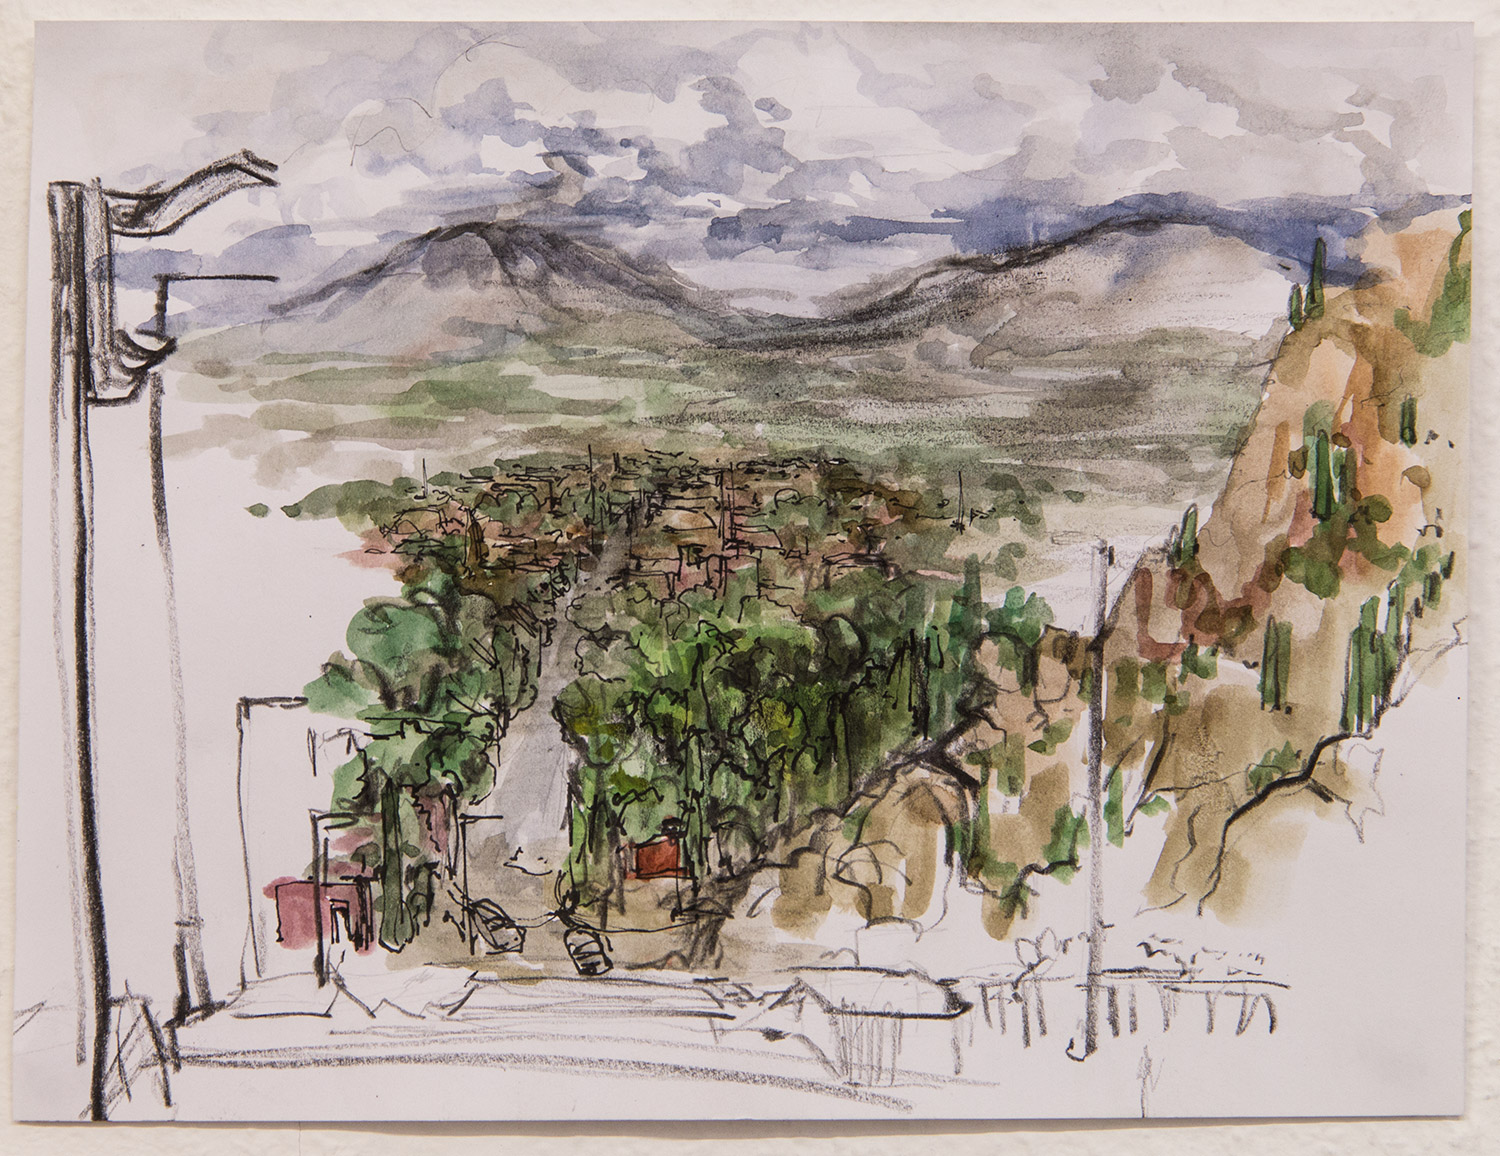 La Rioja - Chilesito; 25 x 19 cm; watercolour, ink and pencil on paper; 2017